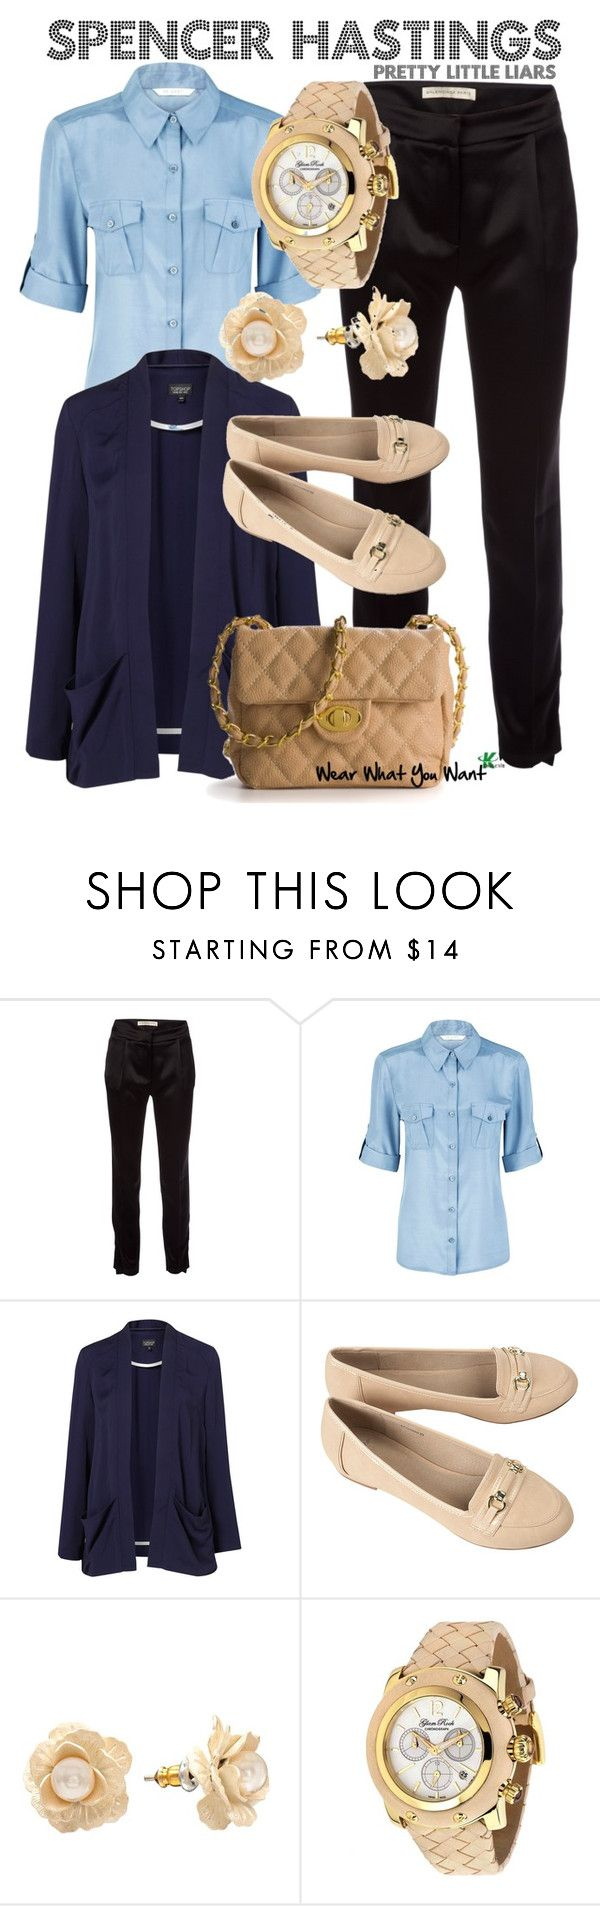 """""""Pretty Little Liars"""" by wearwhatyouwatch ❤ liked on Polyvore featuring Balenciaga, mel, Planet, Topshop, Lauren Conrad, Glam Rock, Urban Expressions, loafers, boyfriend blazers and cross body bags"""